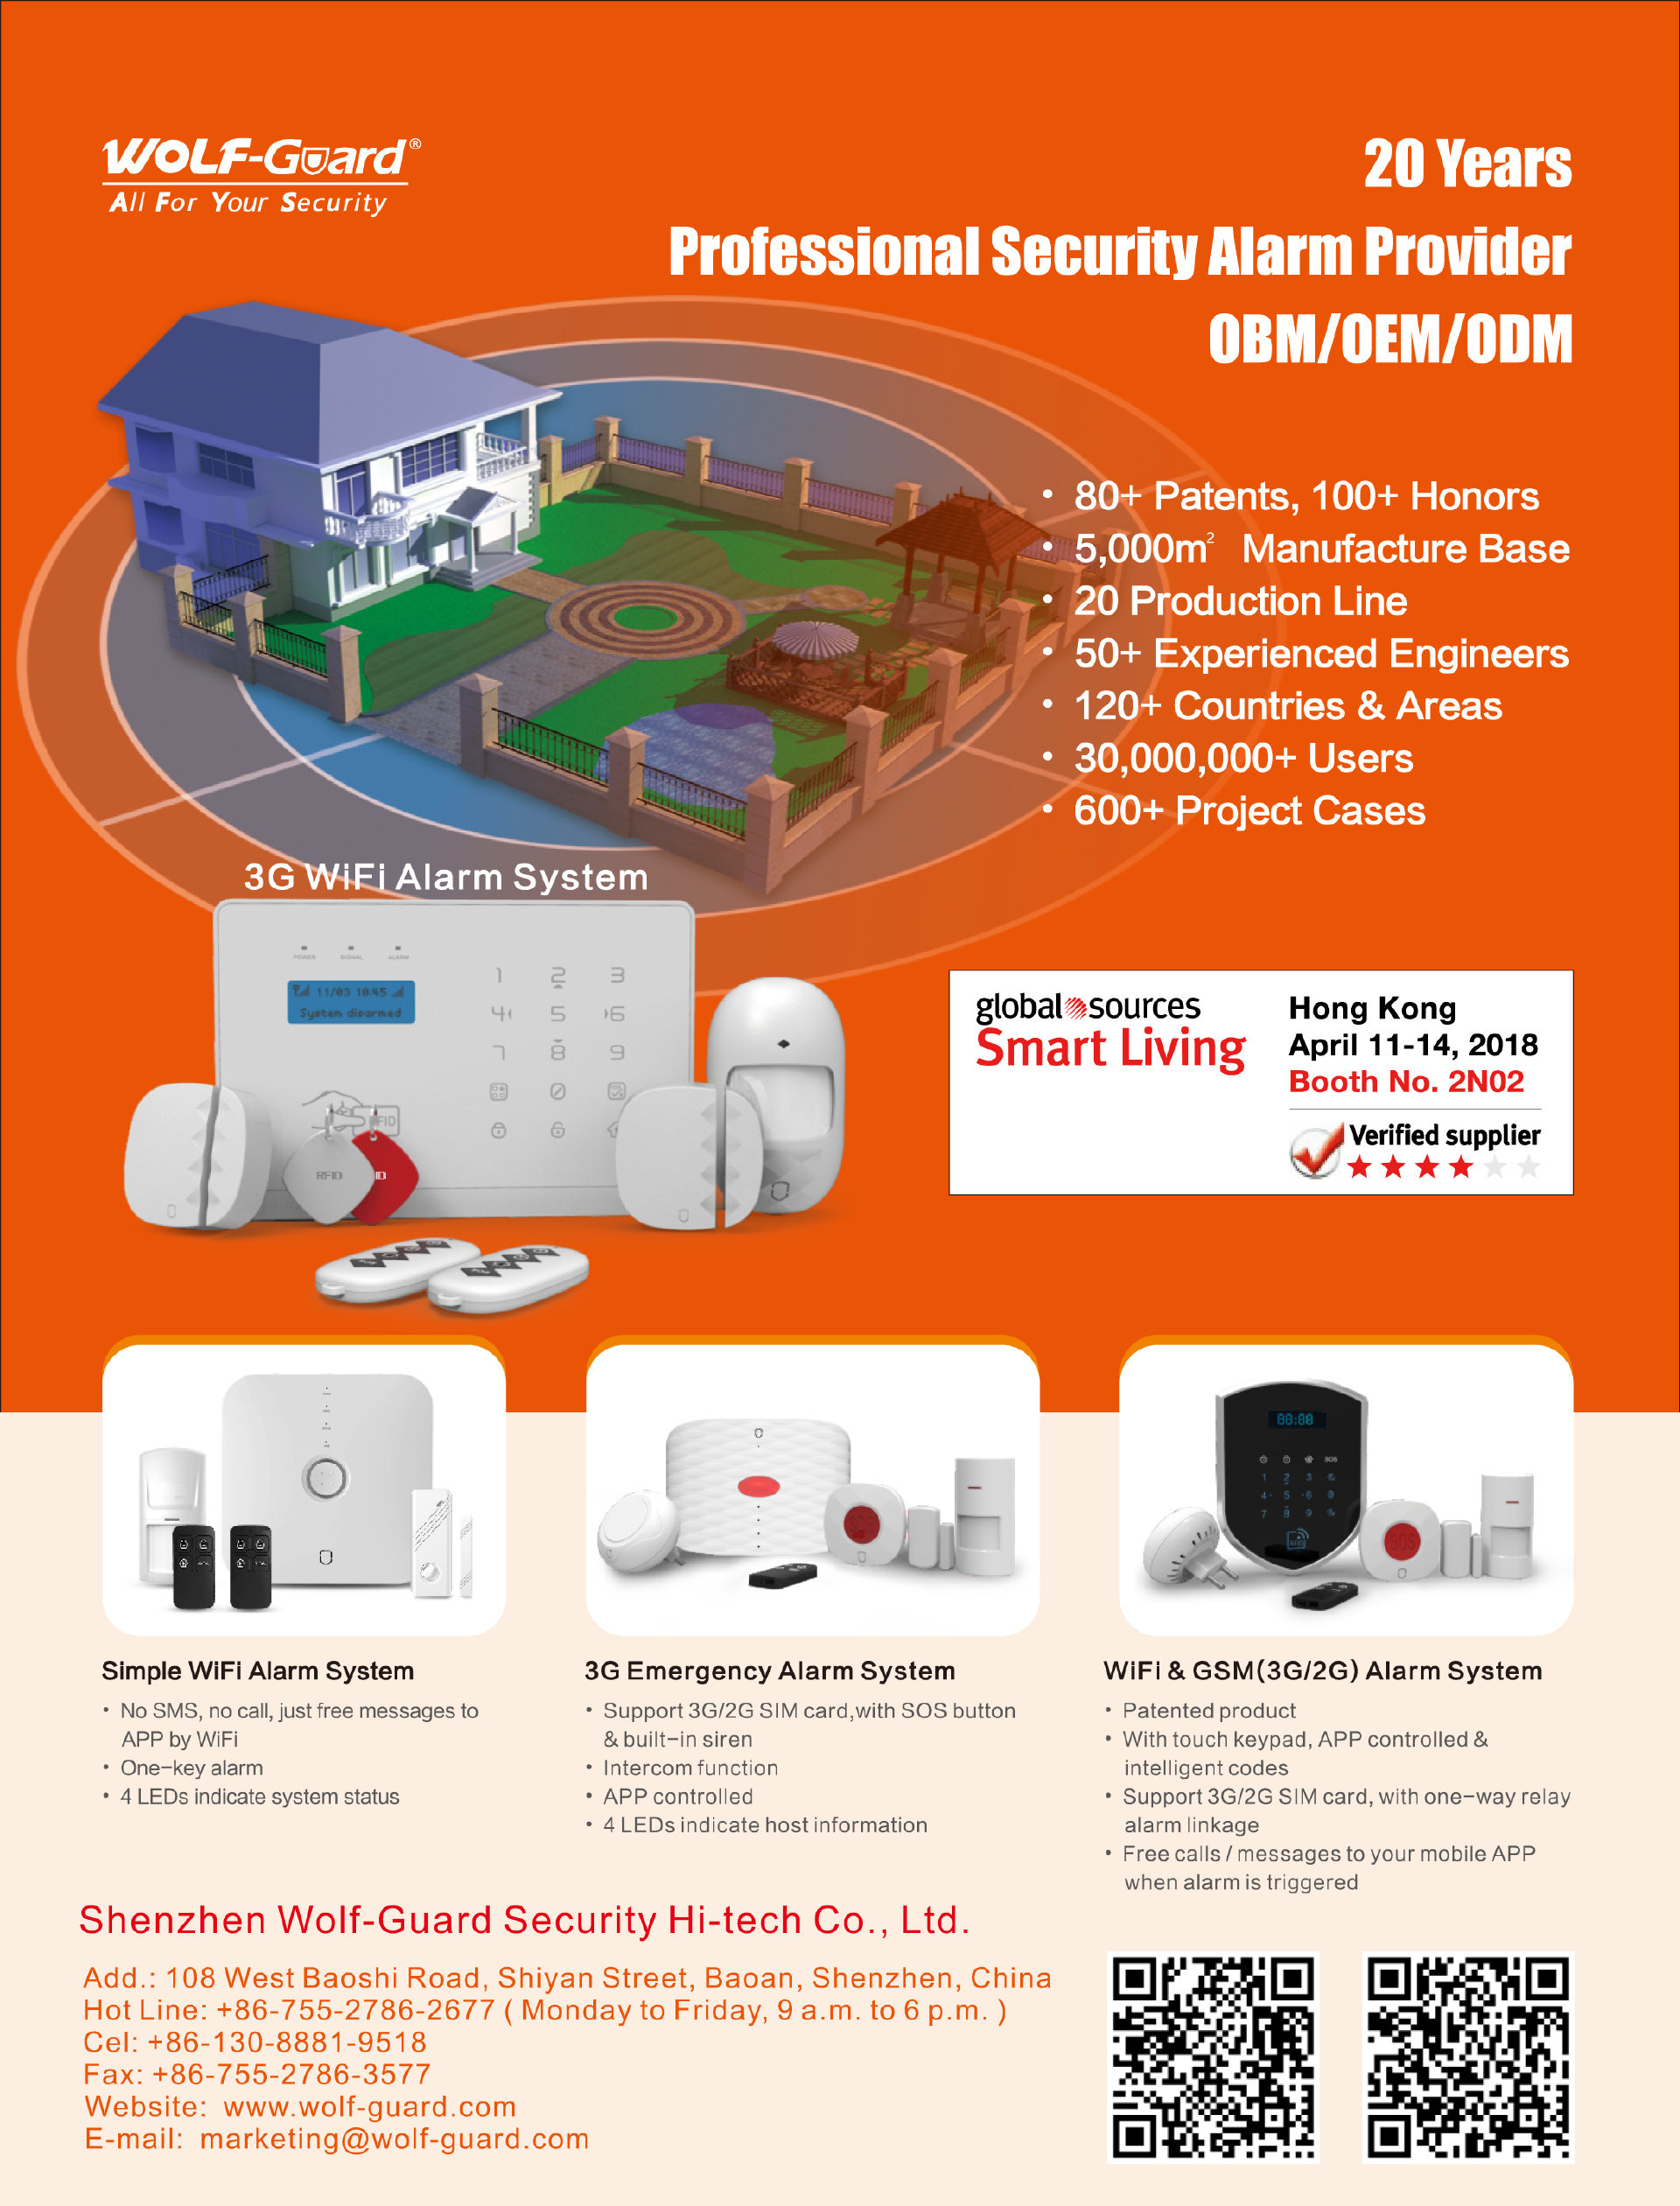 20 years OBM/OEM/ODM for Security Alarm Providing